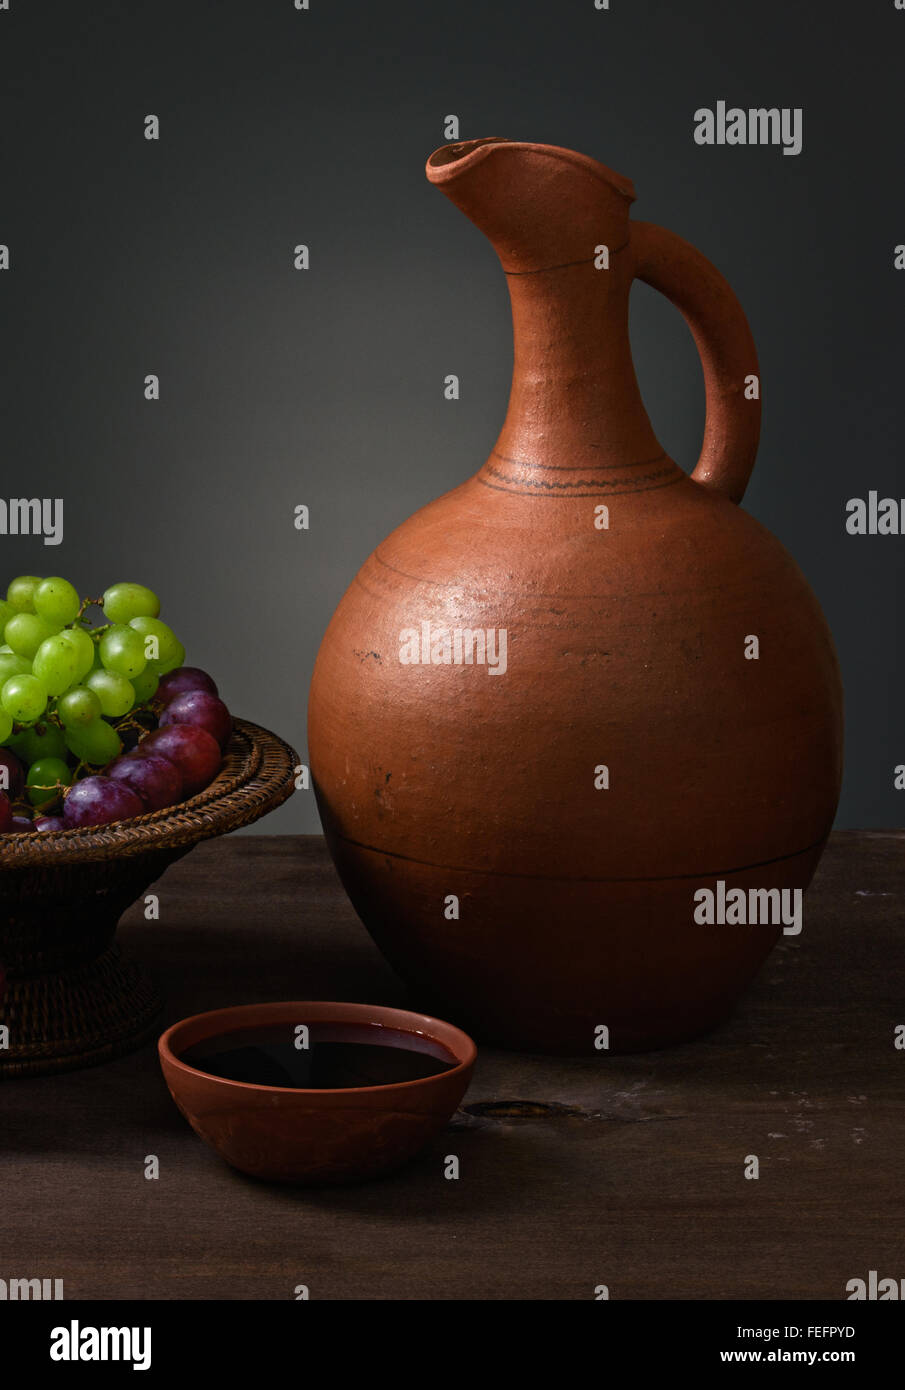 red wine with grapes and a pitcher on a wooden table - Stock Image